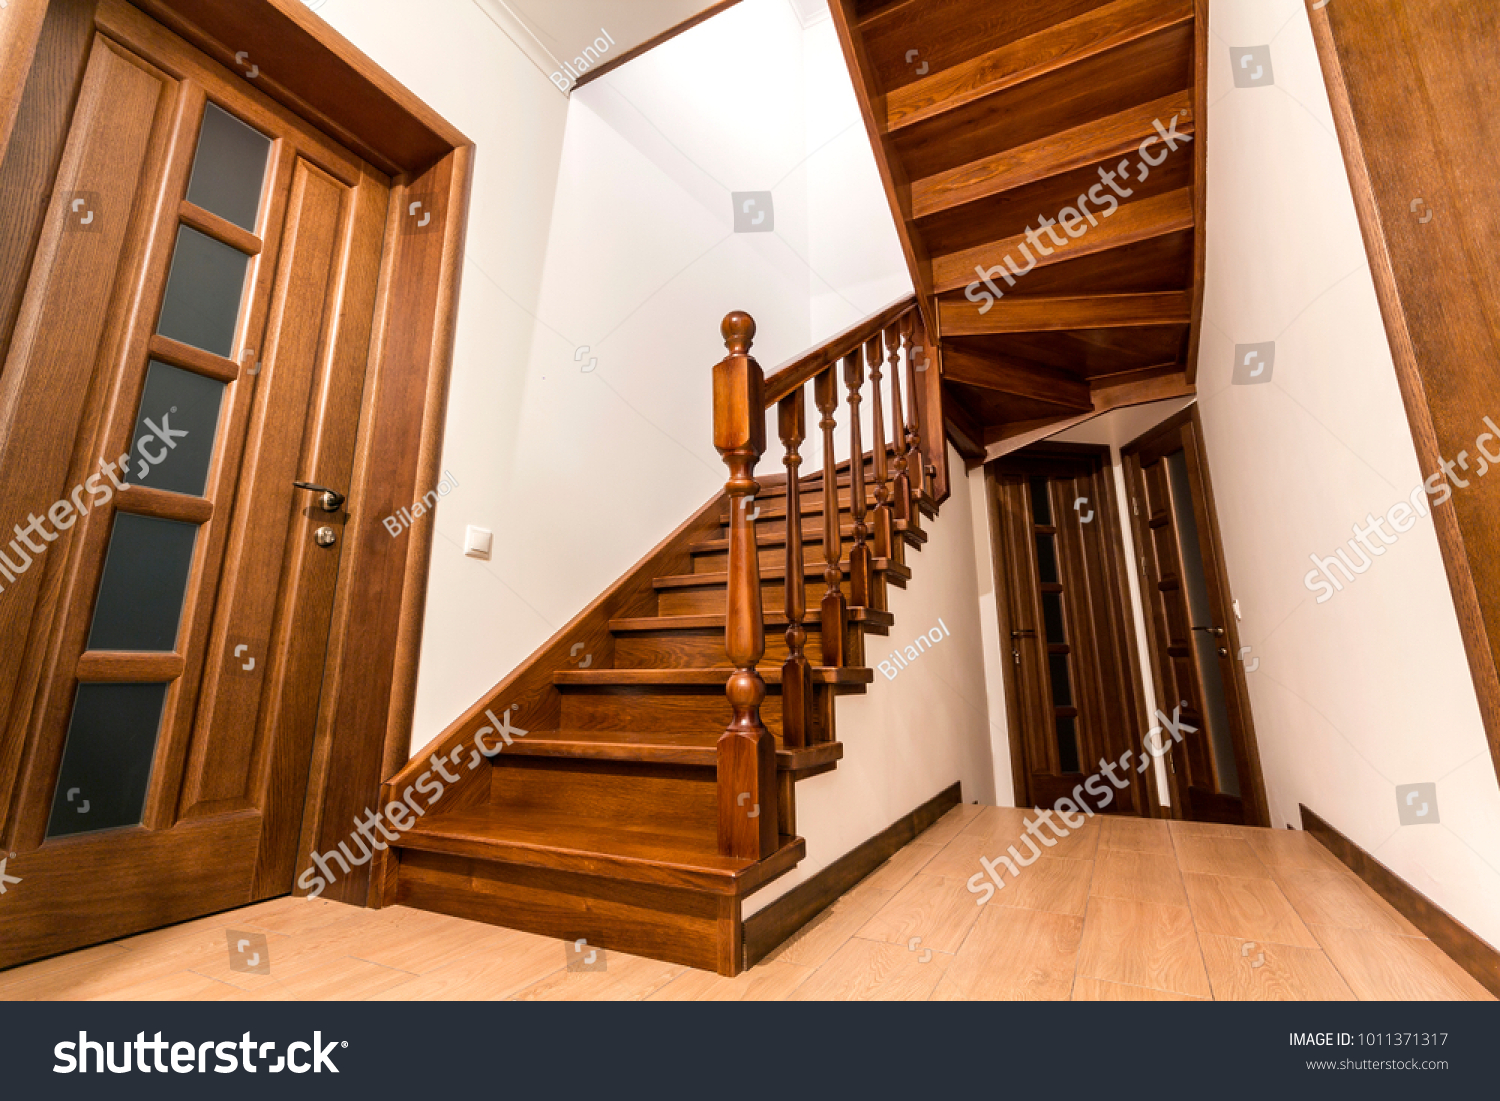 stock-photo-modern-brown-oak-wooden-stairs-and-doors-in-new-renovated-house-interior-1011371317